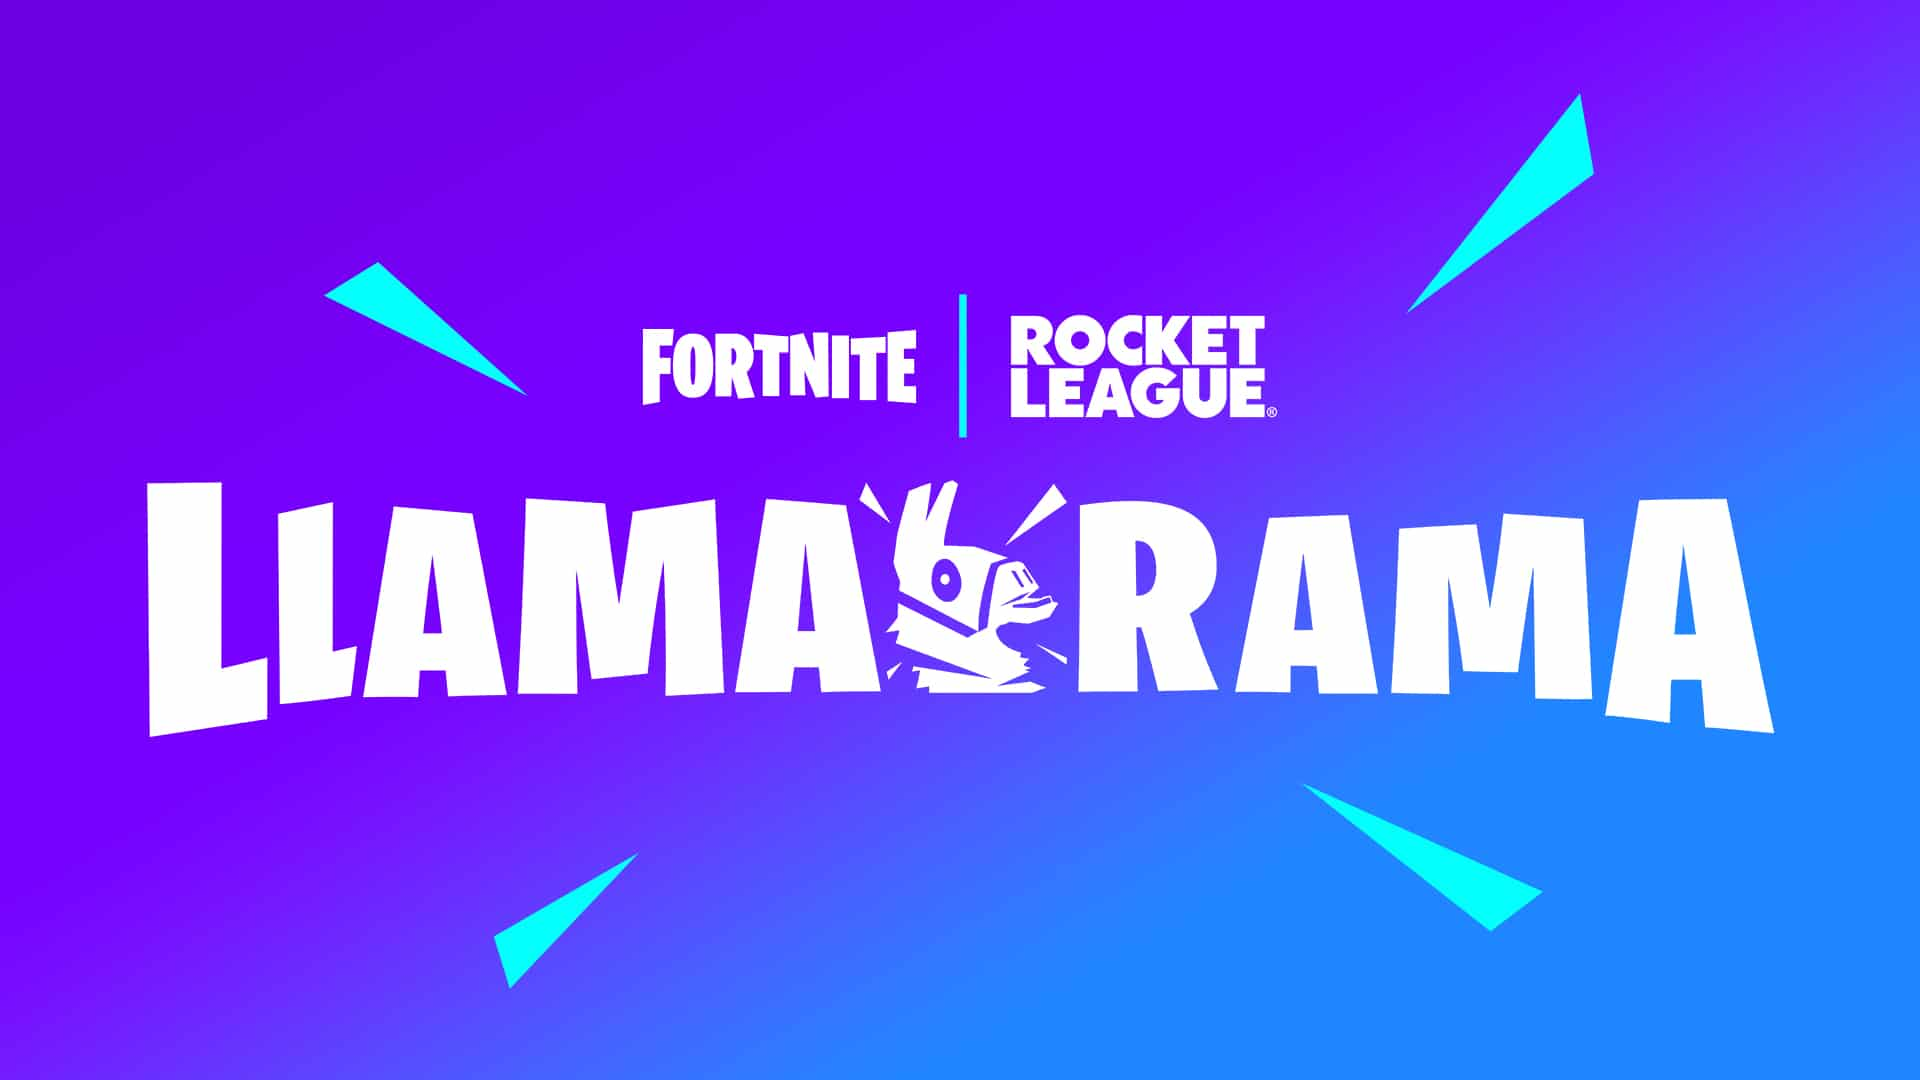 Rocket League X Fortnite